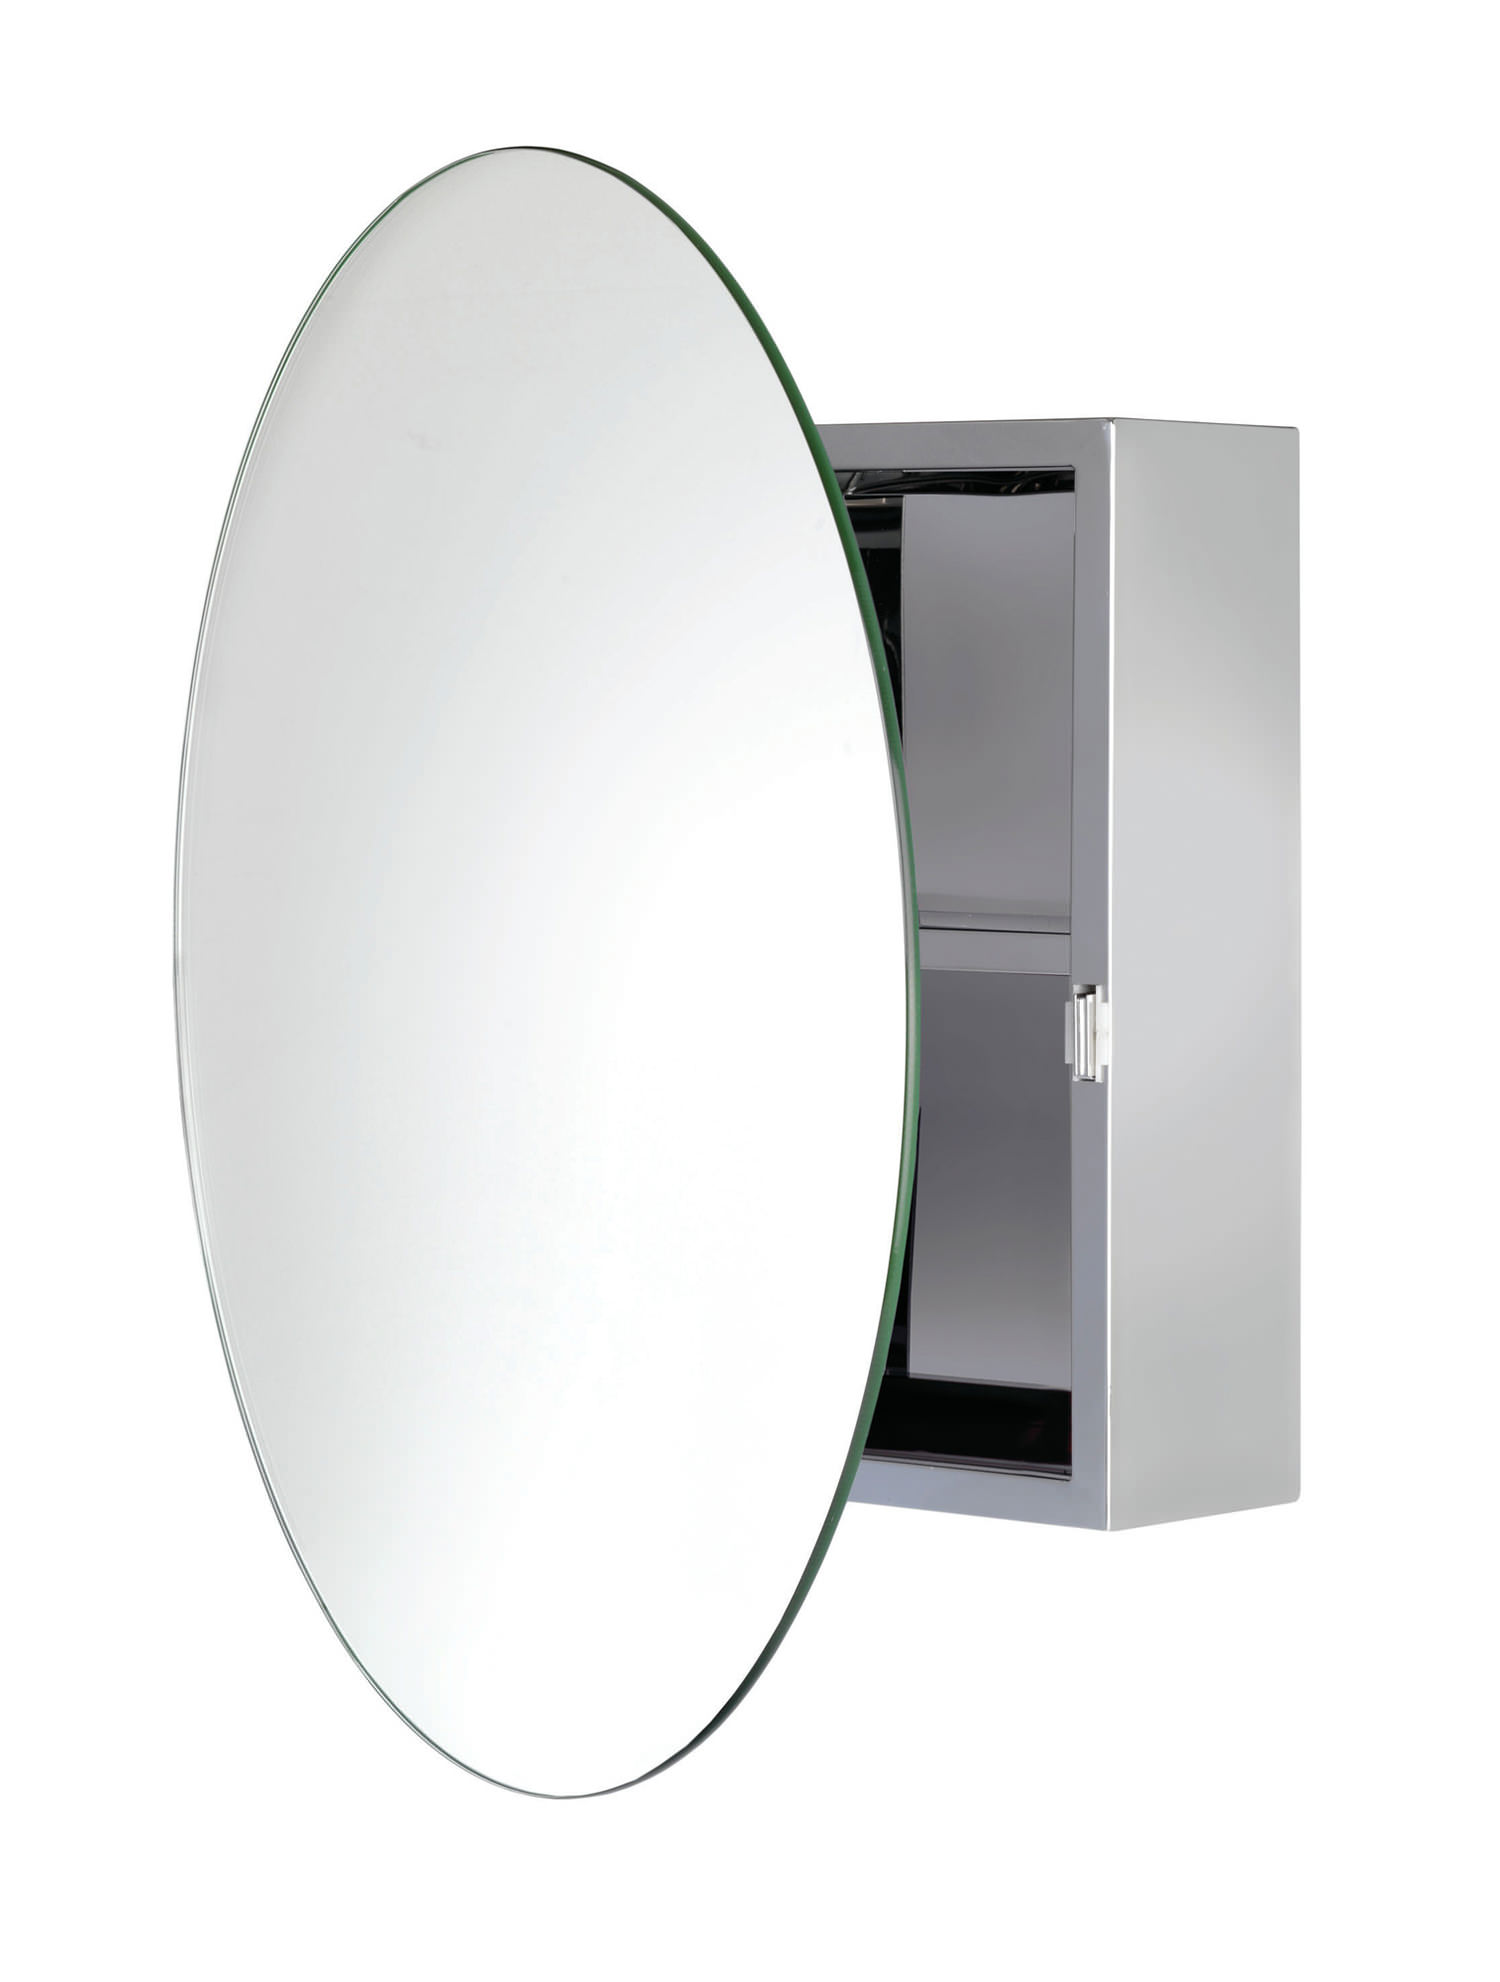 Stainless Steel Bathroom Cabinets - QS Supplies UK